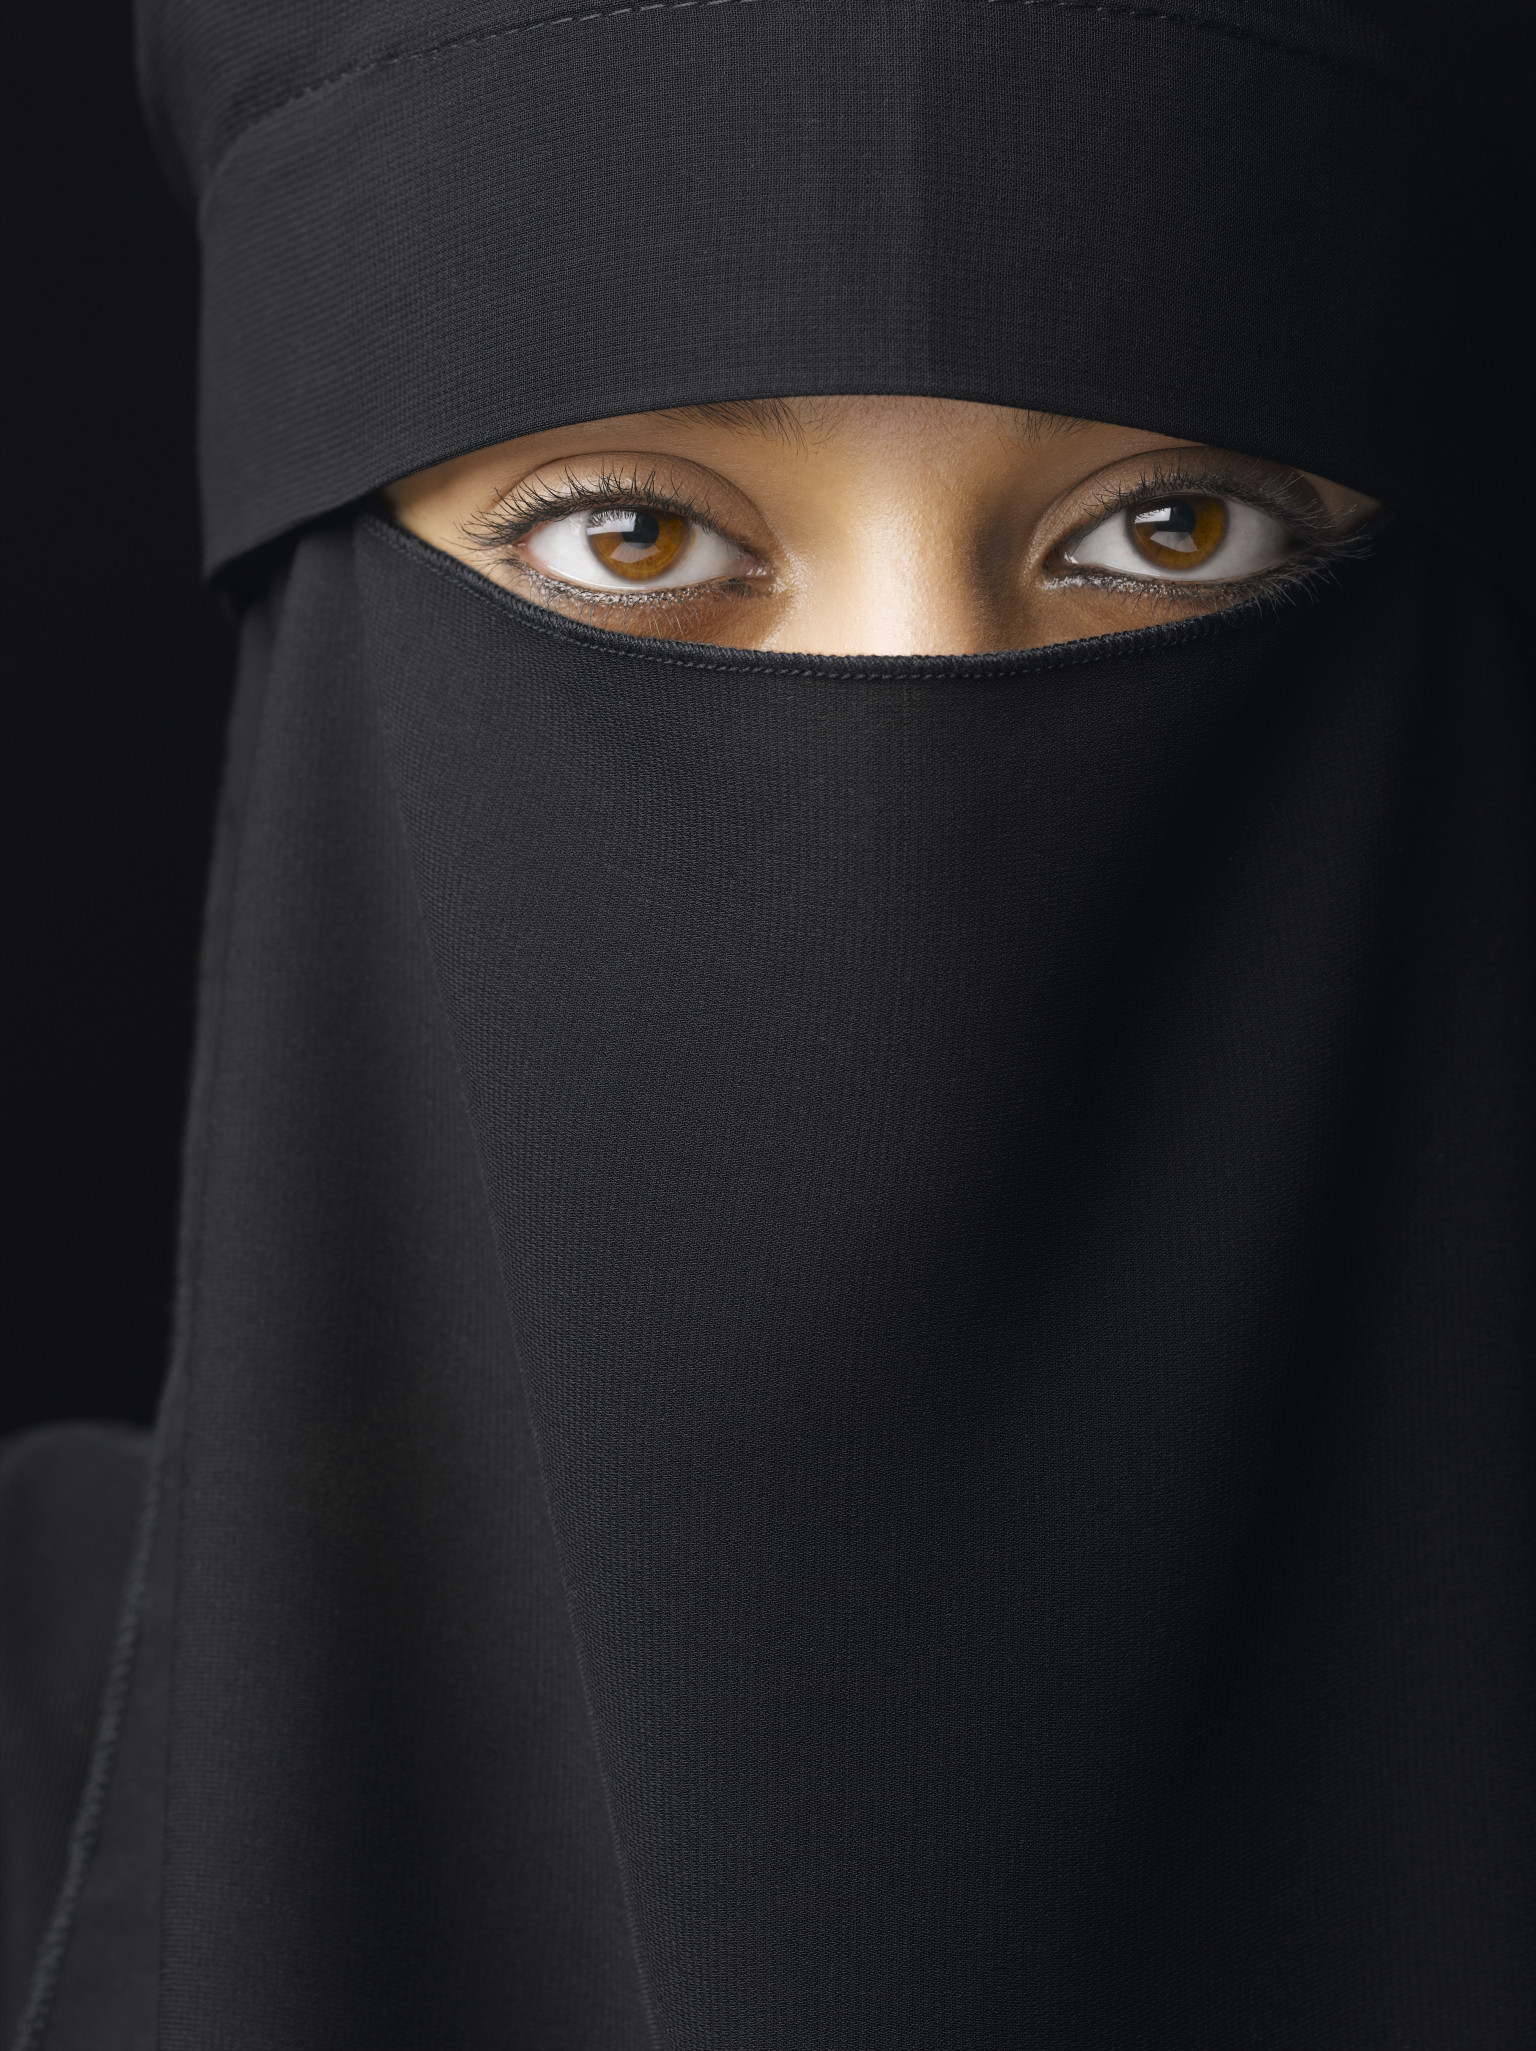 Women > Veiling > What is the Hijab and Why do Women Wear it?